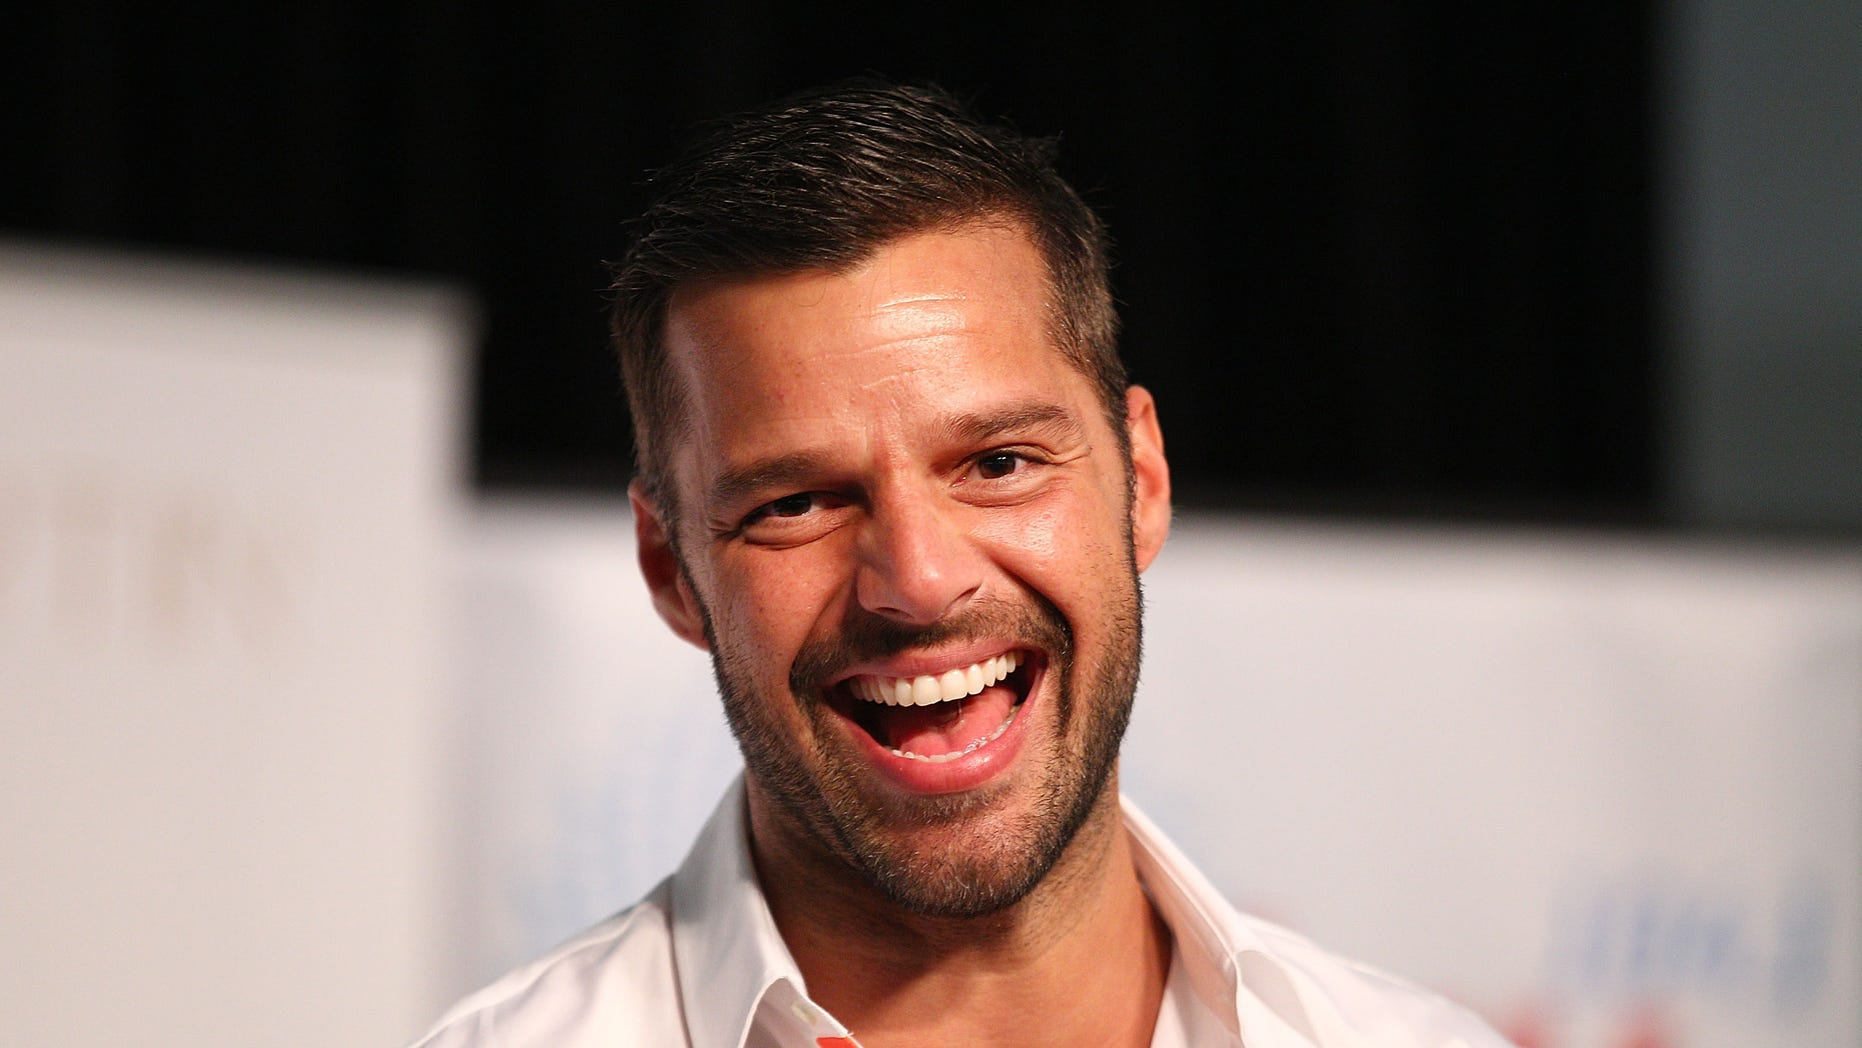 Ricky Martin debuted new facial hair at the 2019 Grammys.